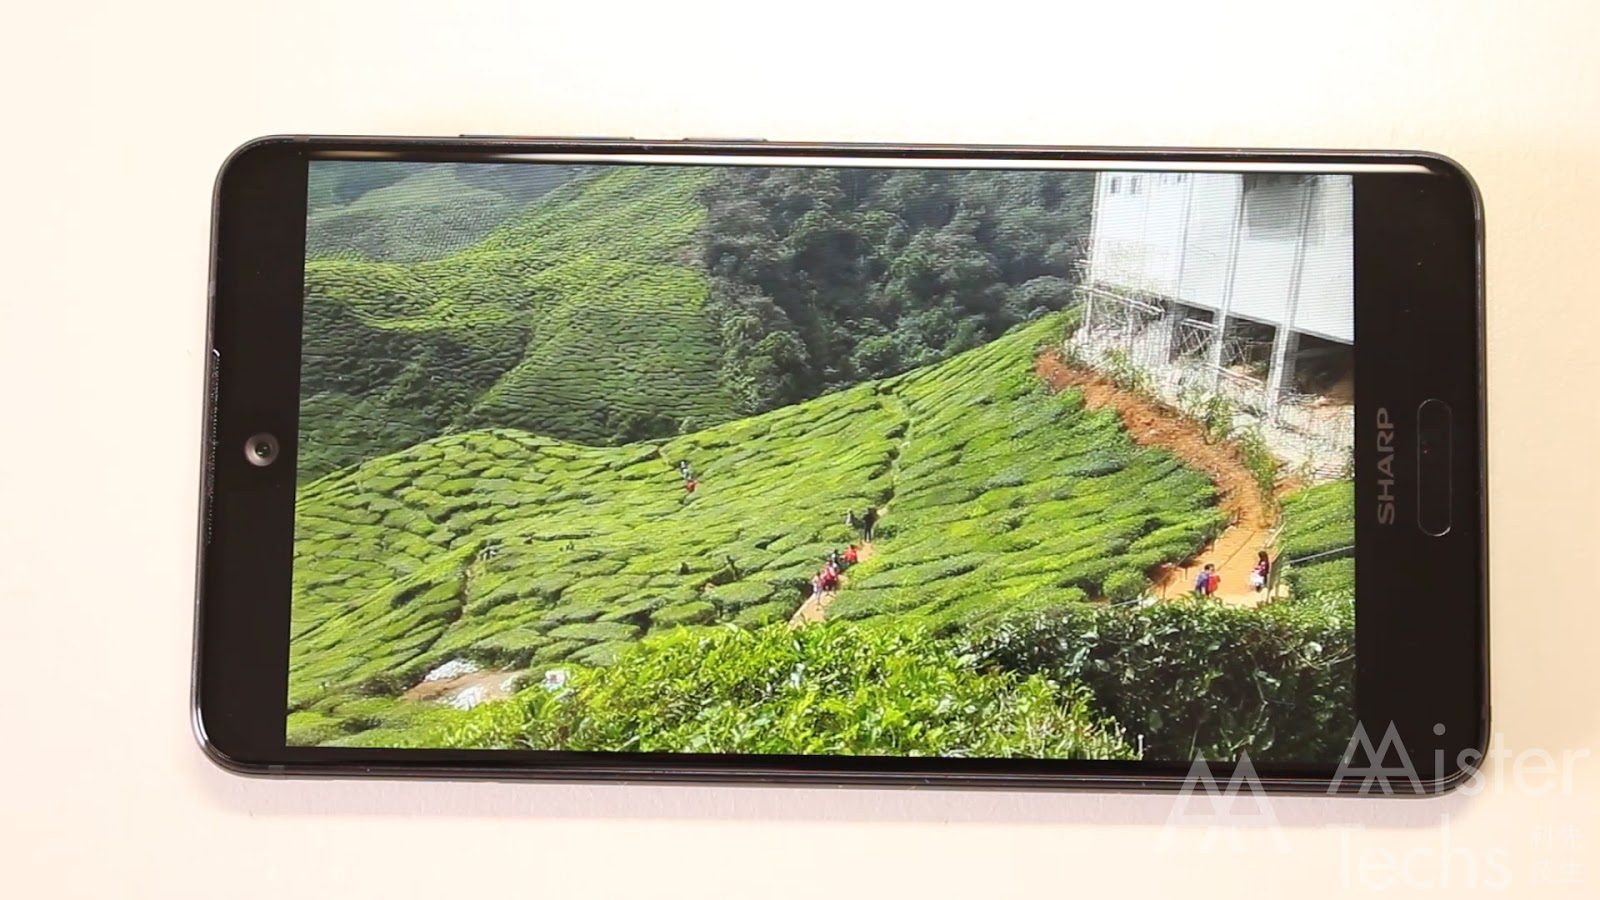 Sharp Aquos S2 Review: Great Bezelless Smartphone with Half Baked